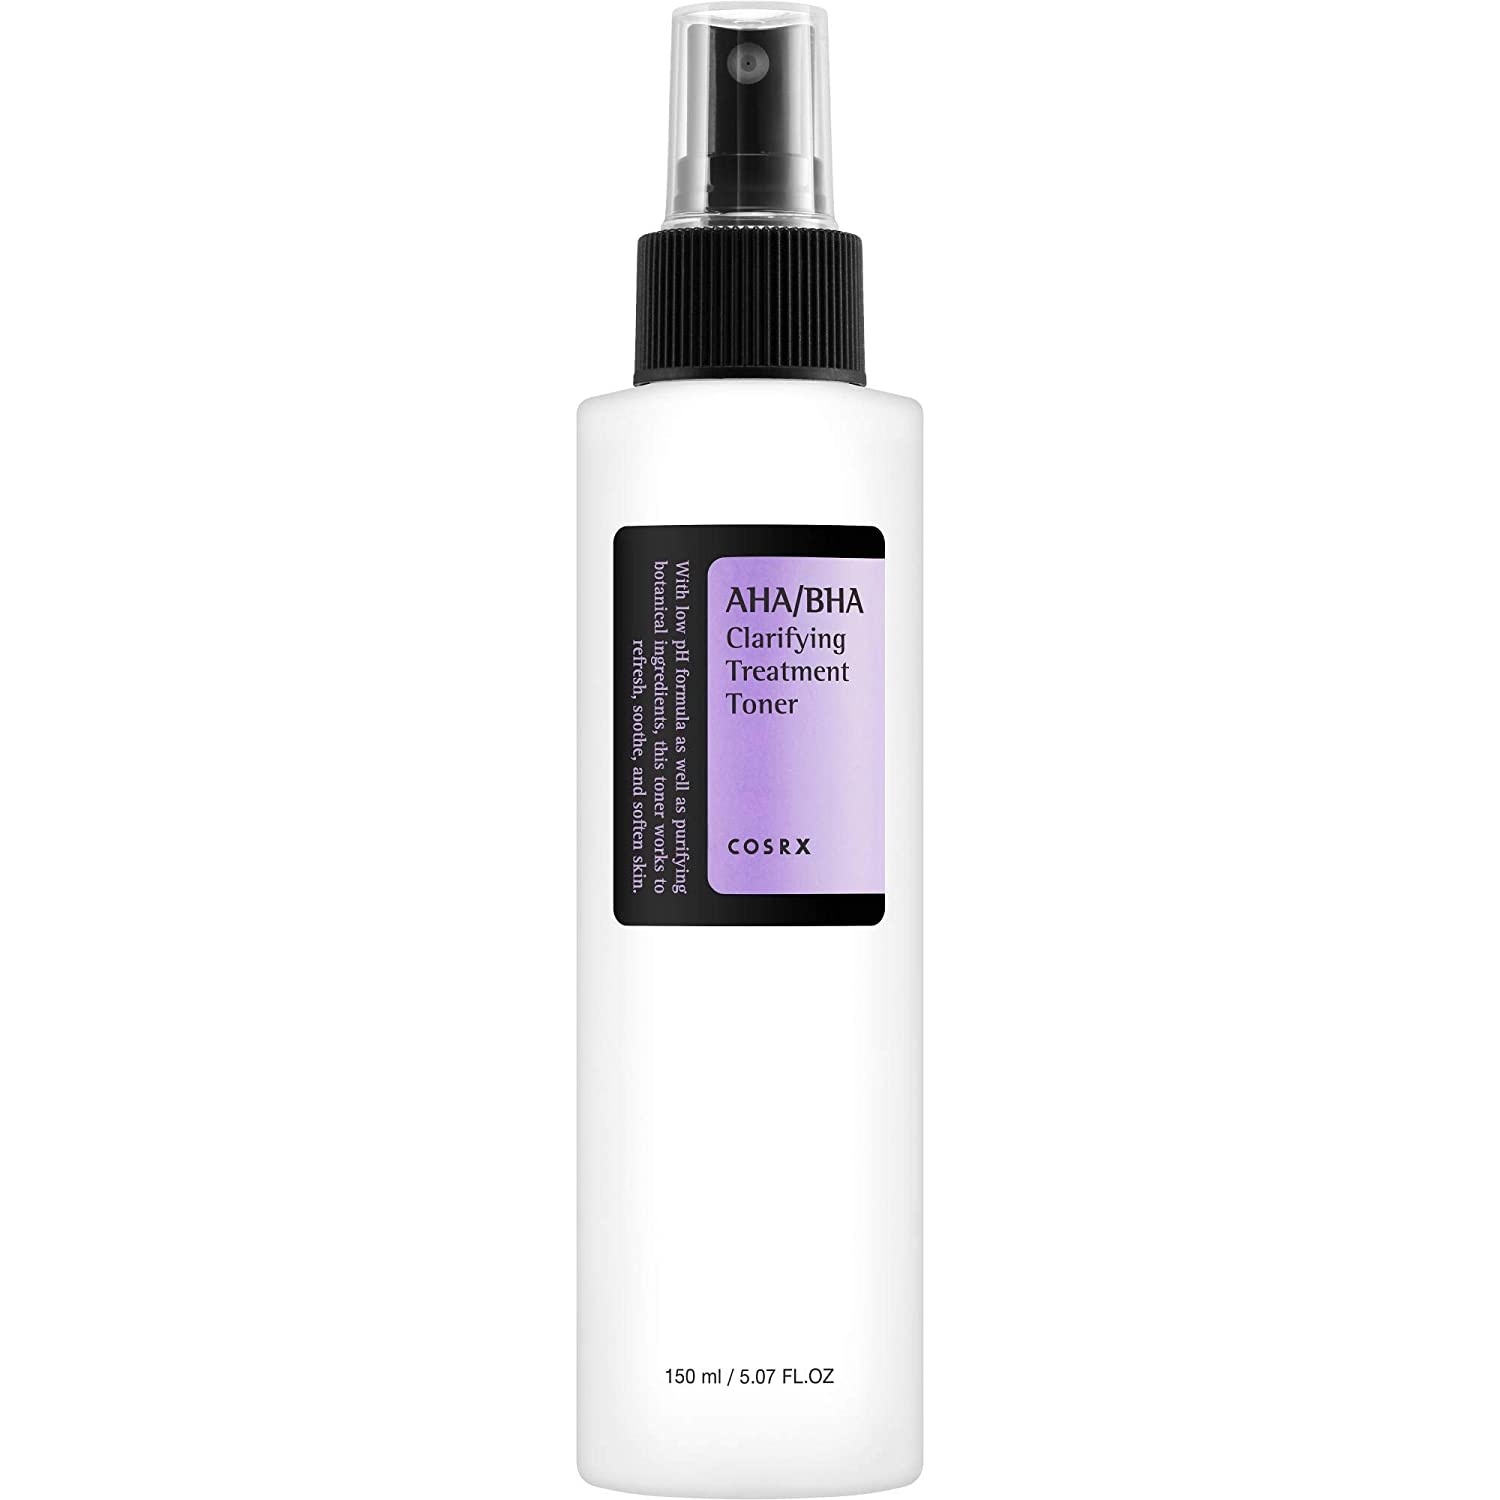 AHA/BHA Clarifying Treatment Toner for dry skin by COSRX